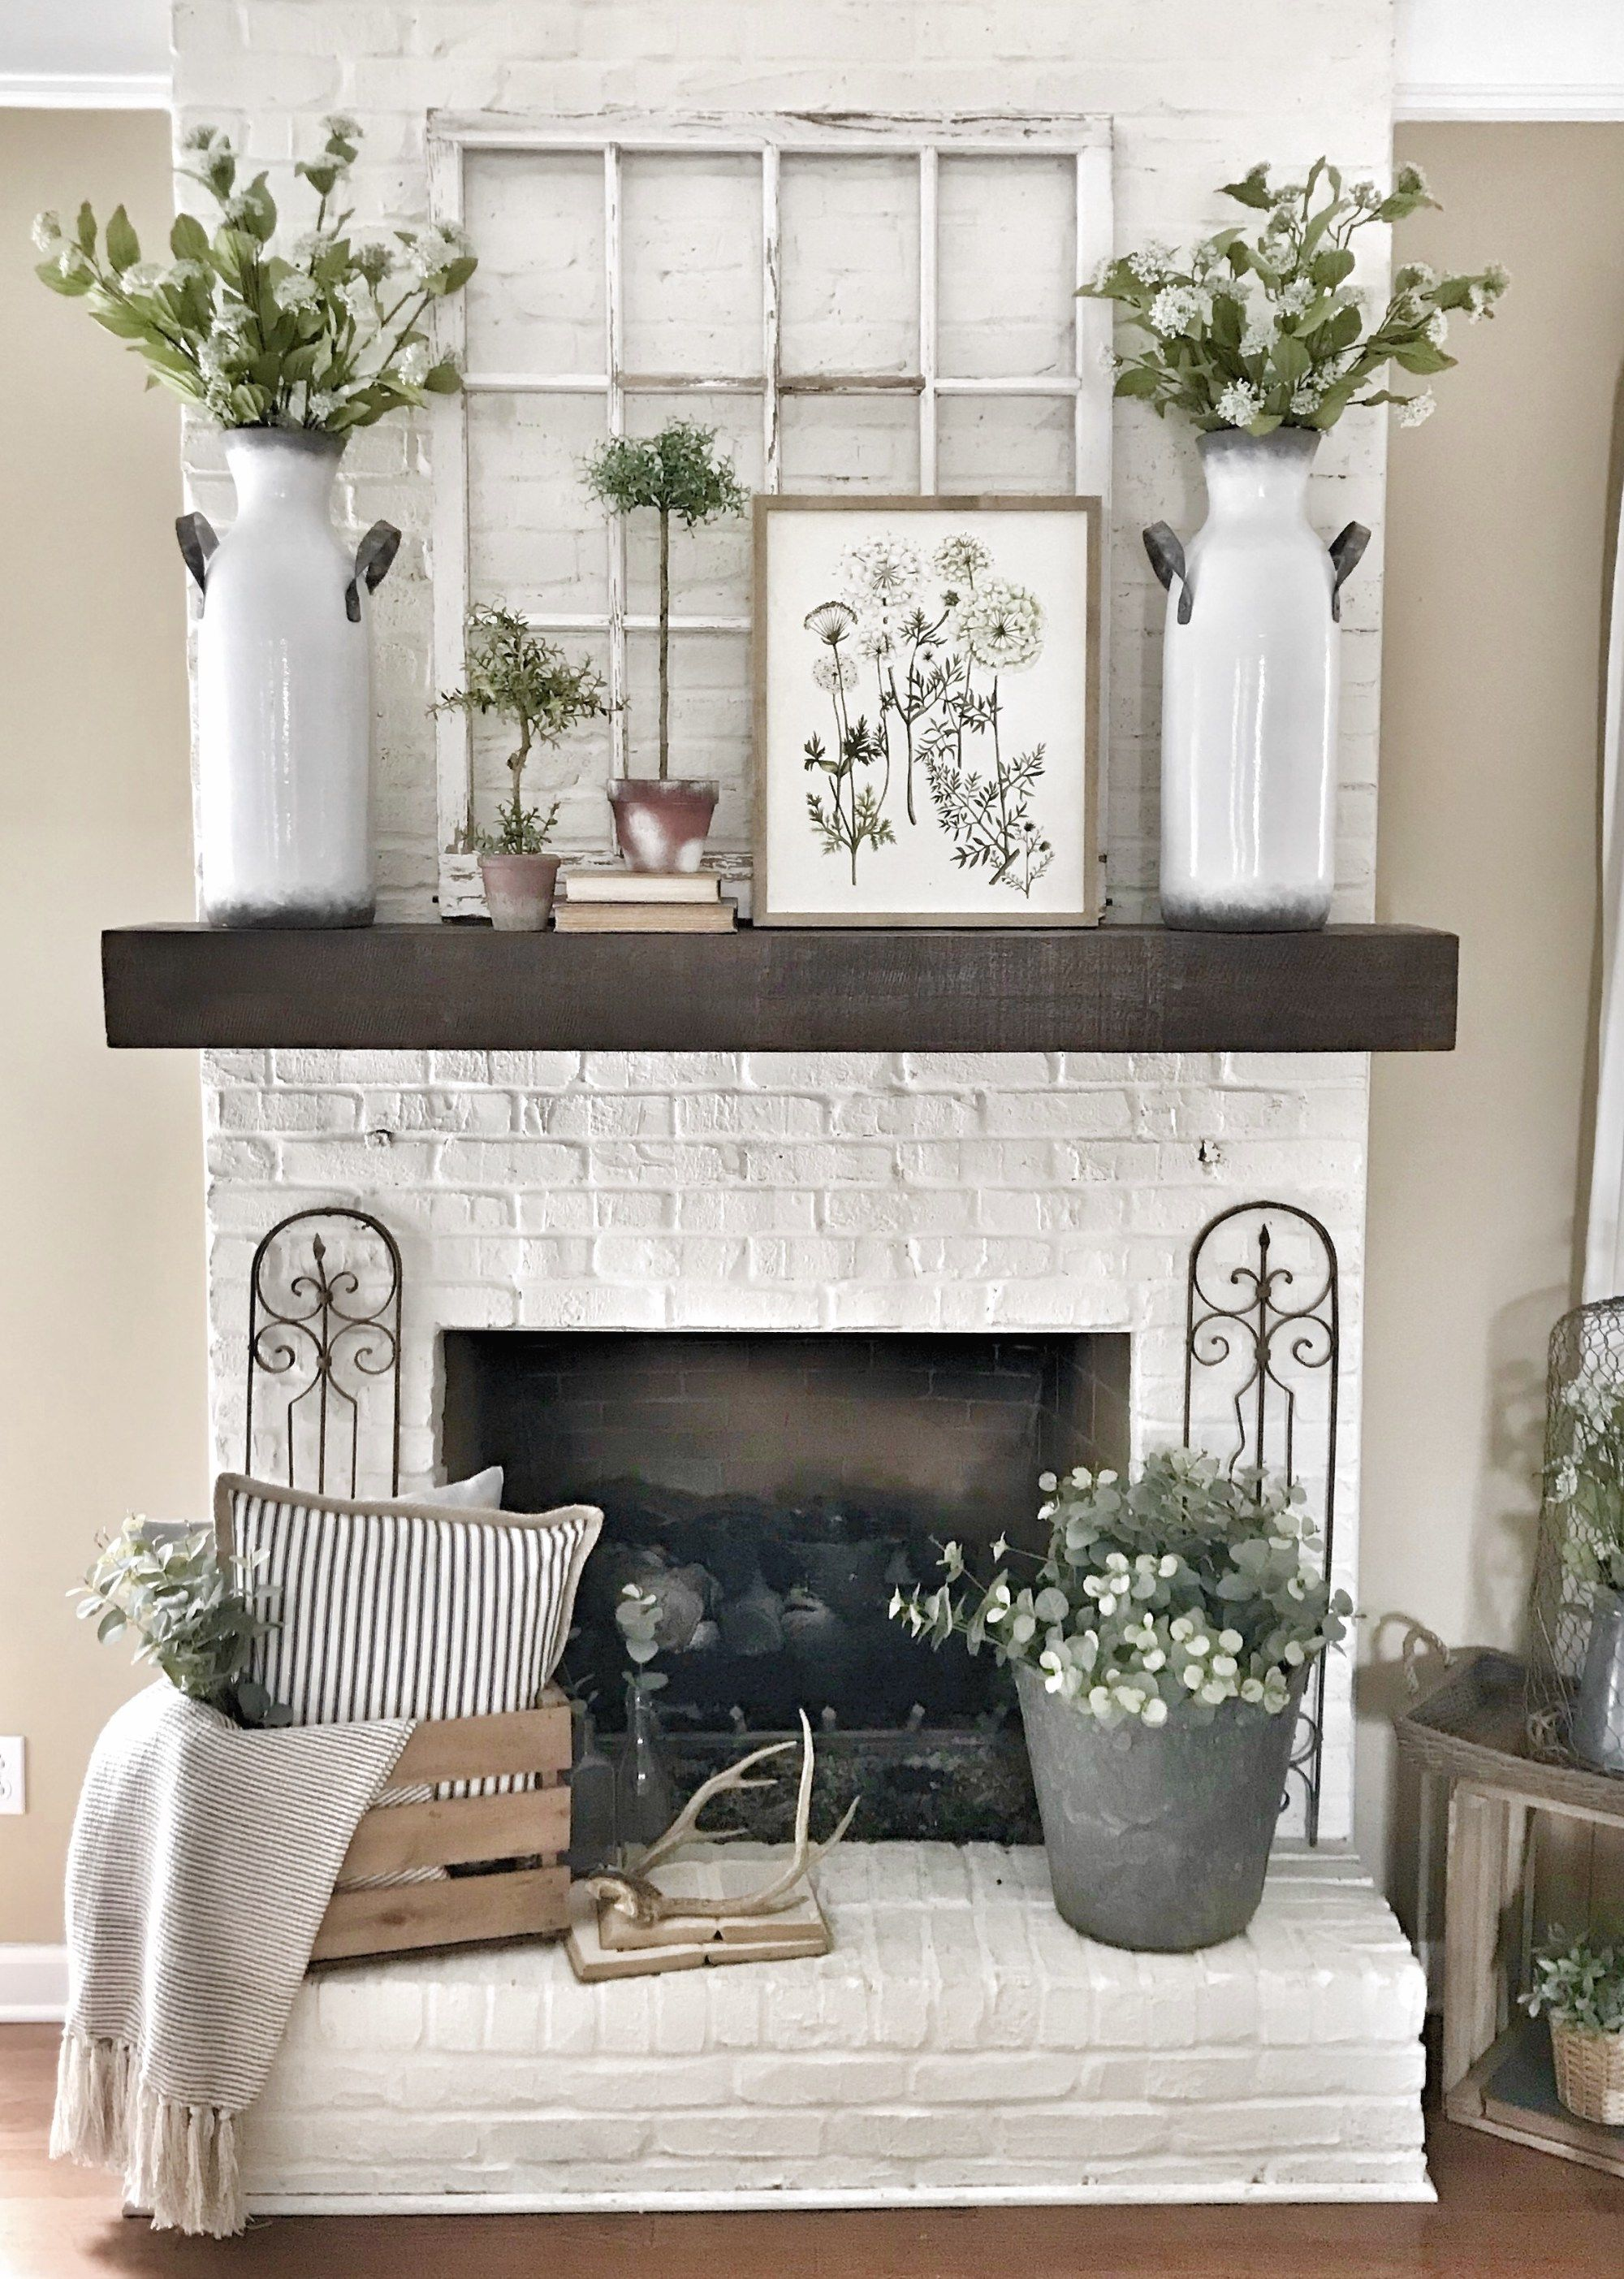 My Pottery Barn Shelf Mantel Hack Bless This Nest Pottery Barn Shelves Farm House Living Room Fireplace Mantel Decor